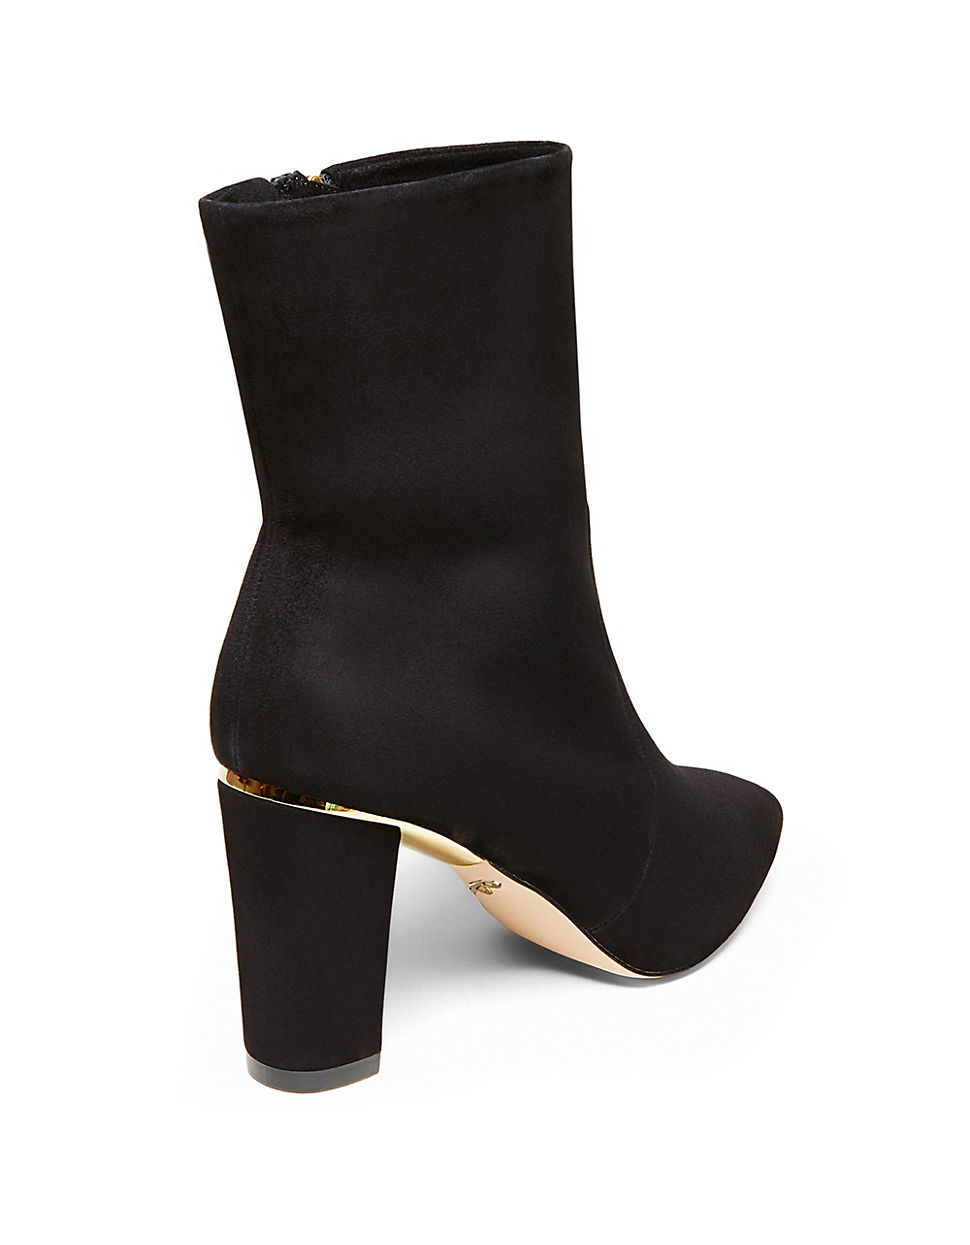 b brian atwood suede ankle boots in black lyst